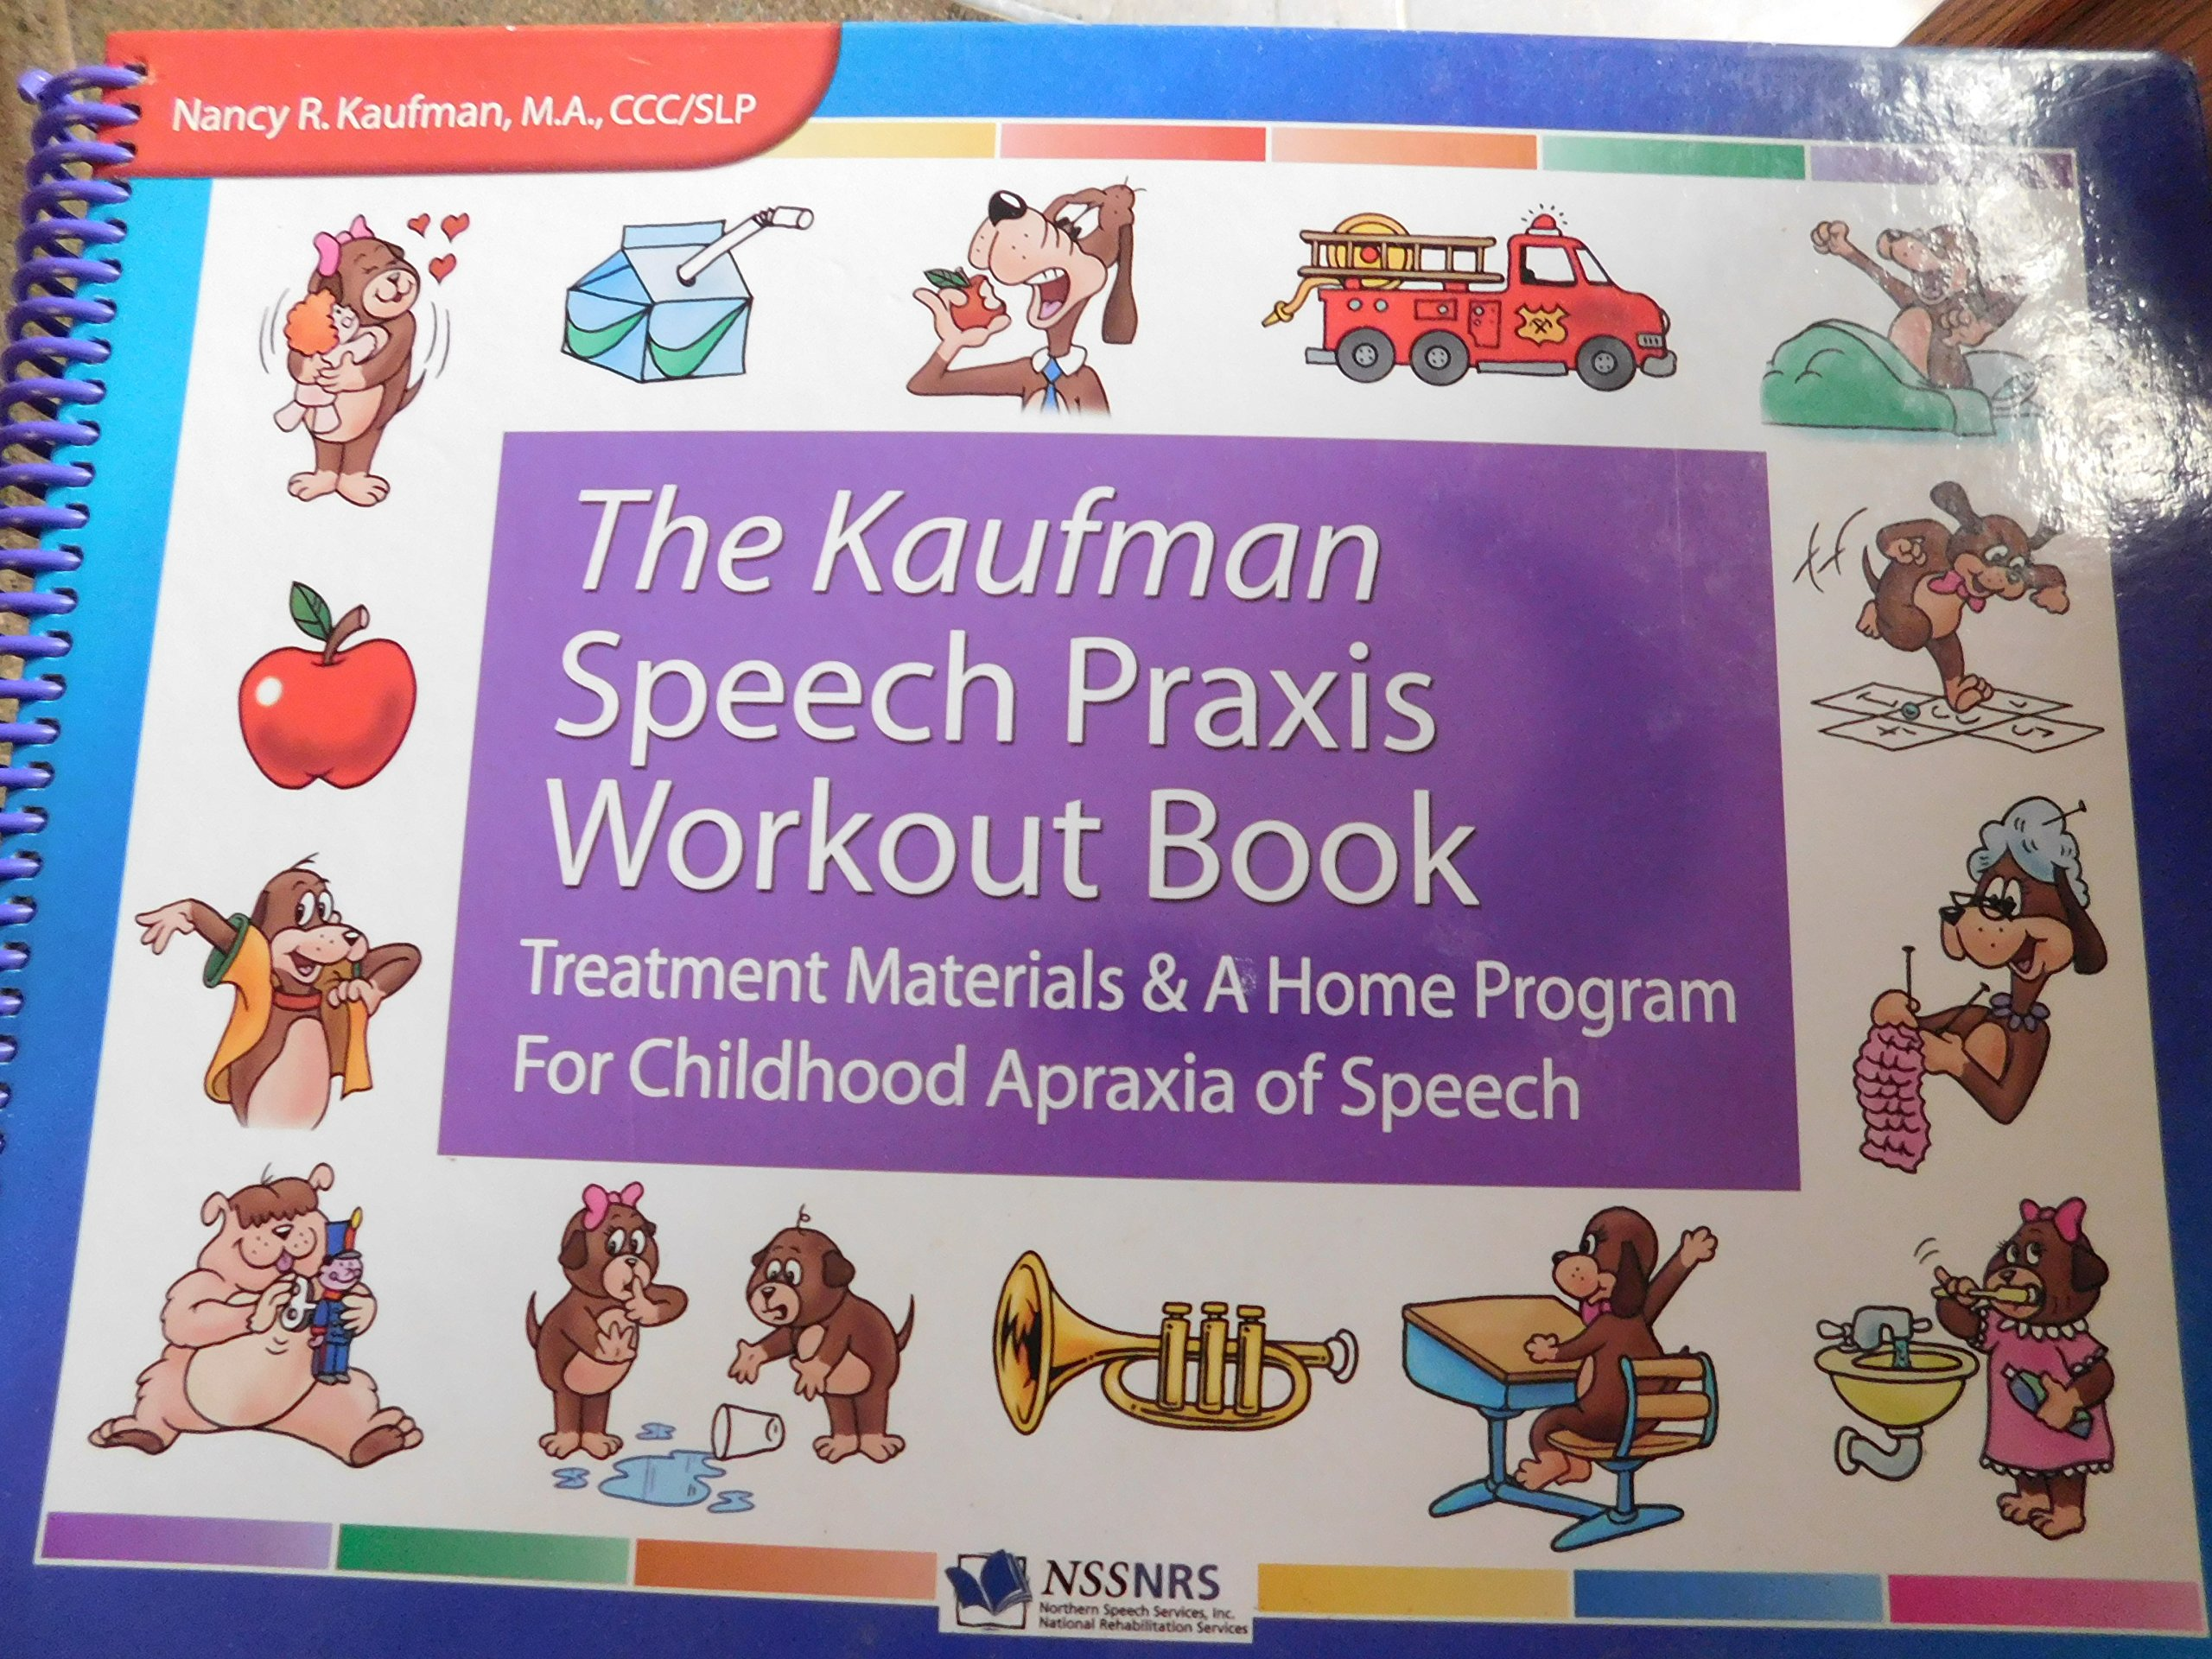 The Kaufman Speech to Language Protocol Workout Book: CCC/SLP Nancy R.  Kaufman M.A.: 9780976549710: Amazon.com: Books